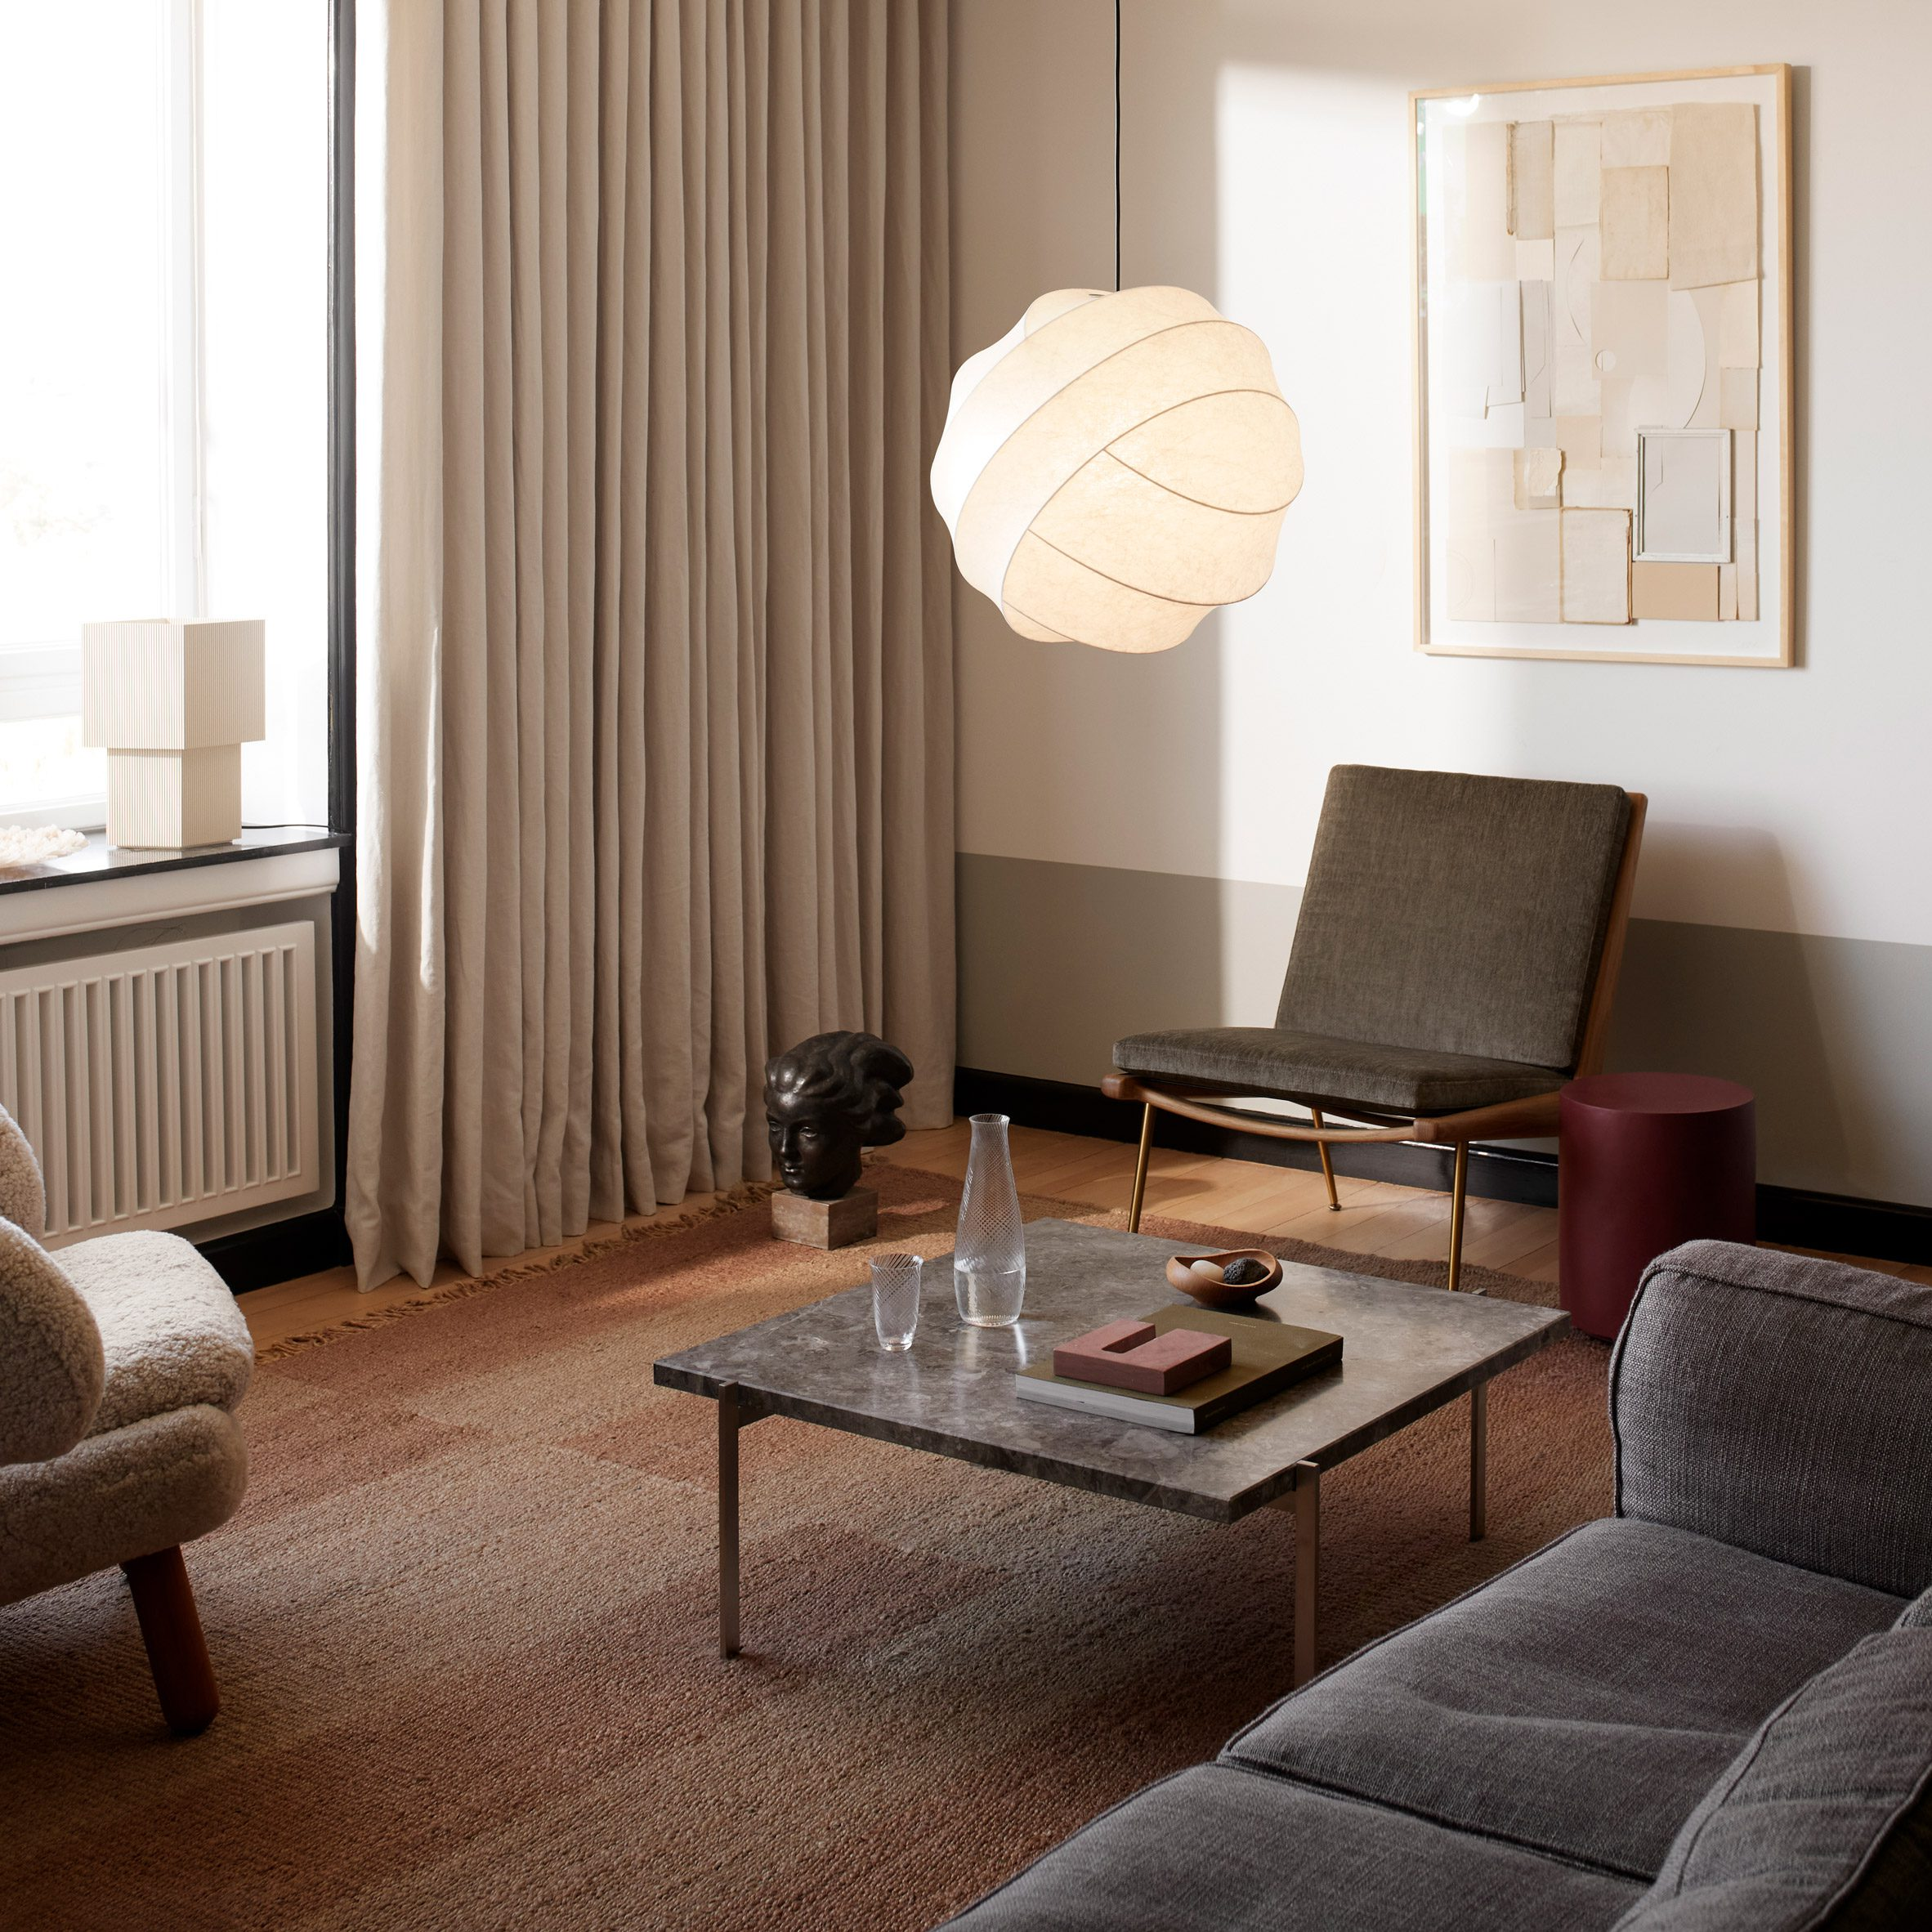 The turner pendant light hanging in a living room